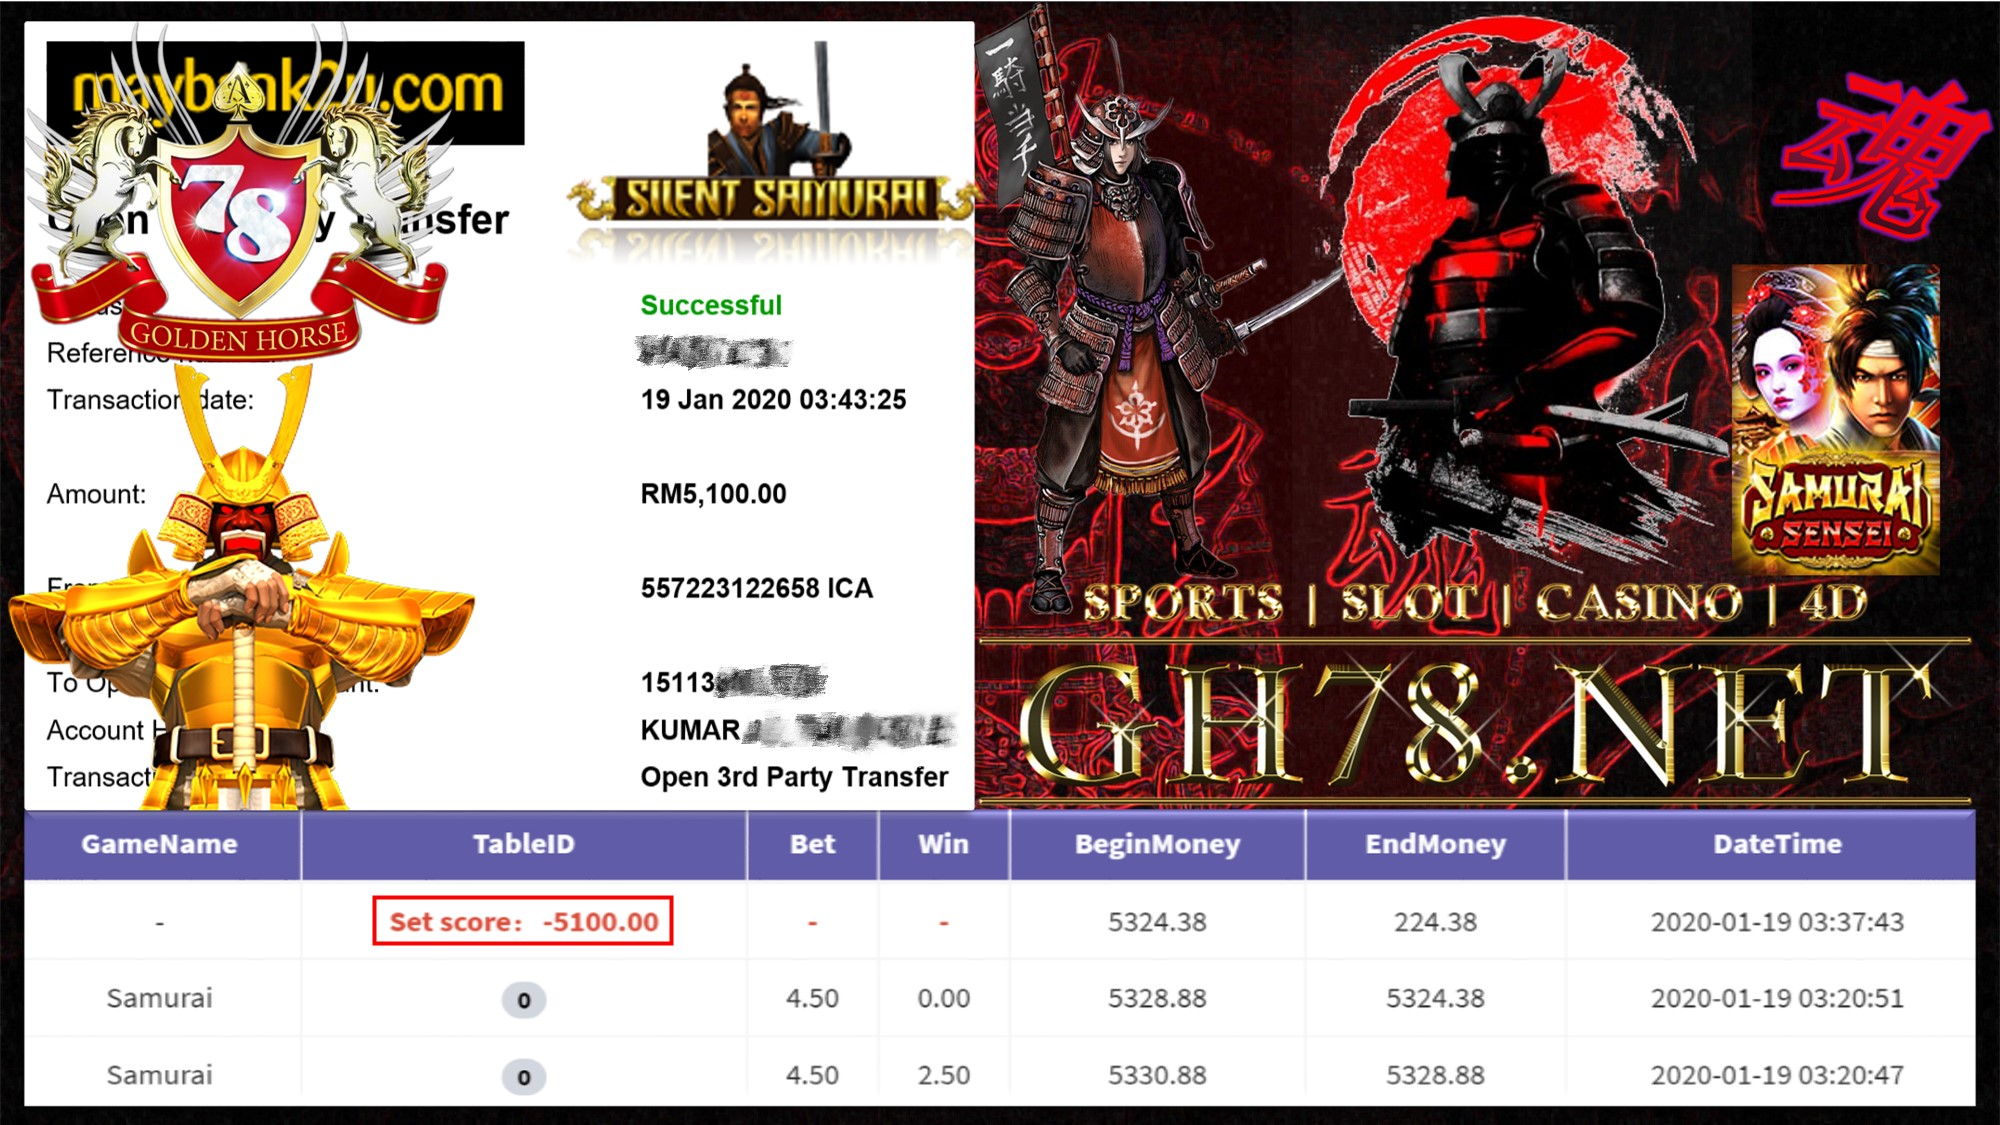 2020 NEW YEAR !!! MEMBER MAIN 918KISS , SAMURAI WITHDRAW RM5100!!!